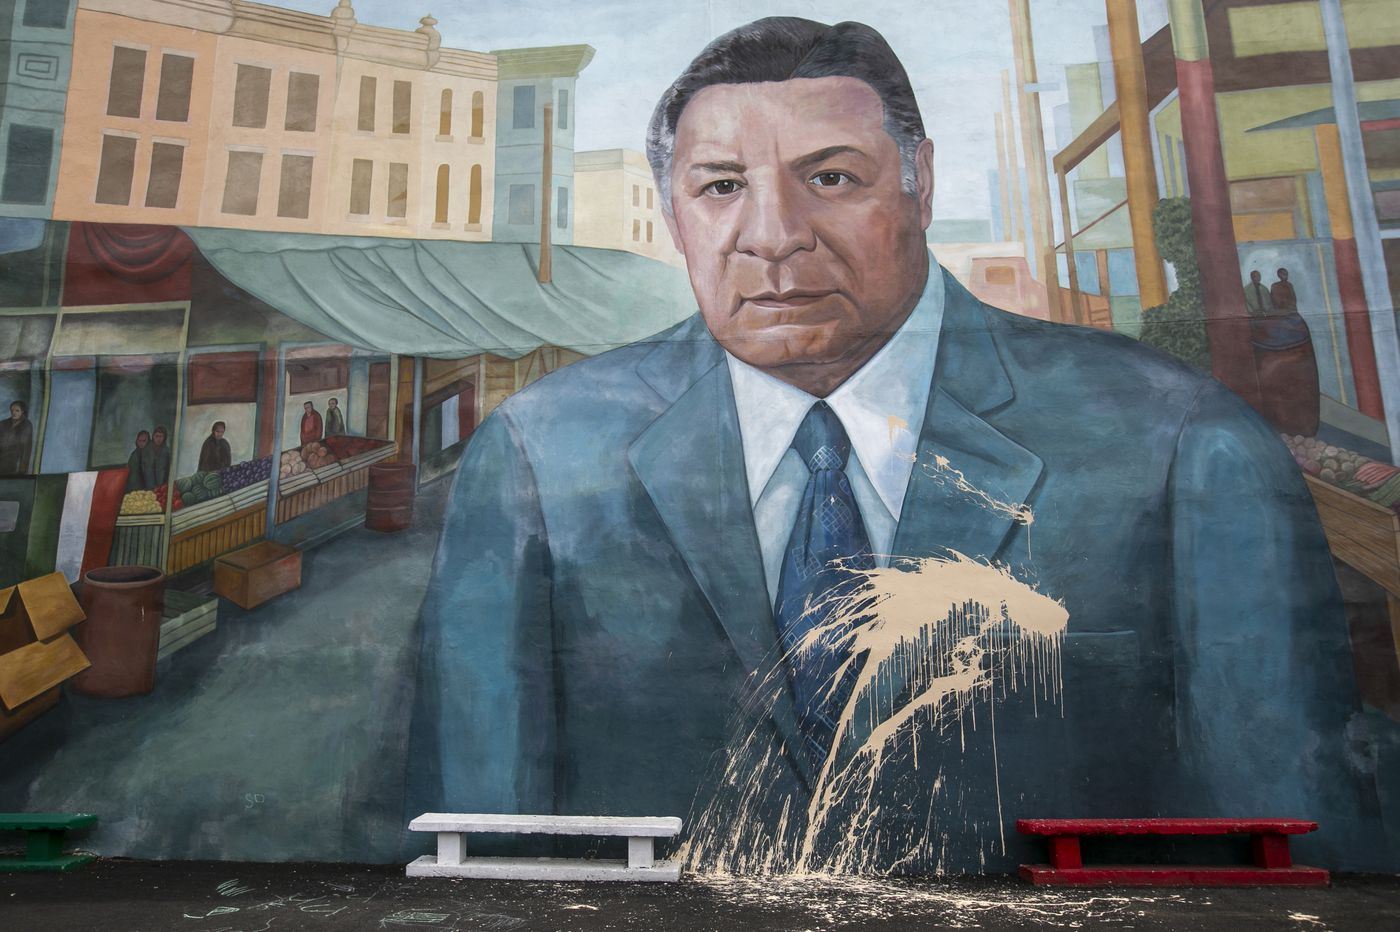 Italian Market says it's getting rid of the Frank Rizzo mural